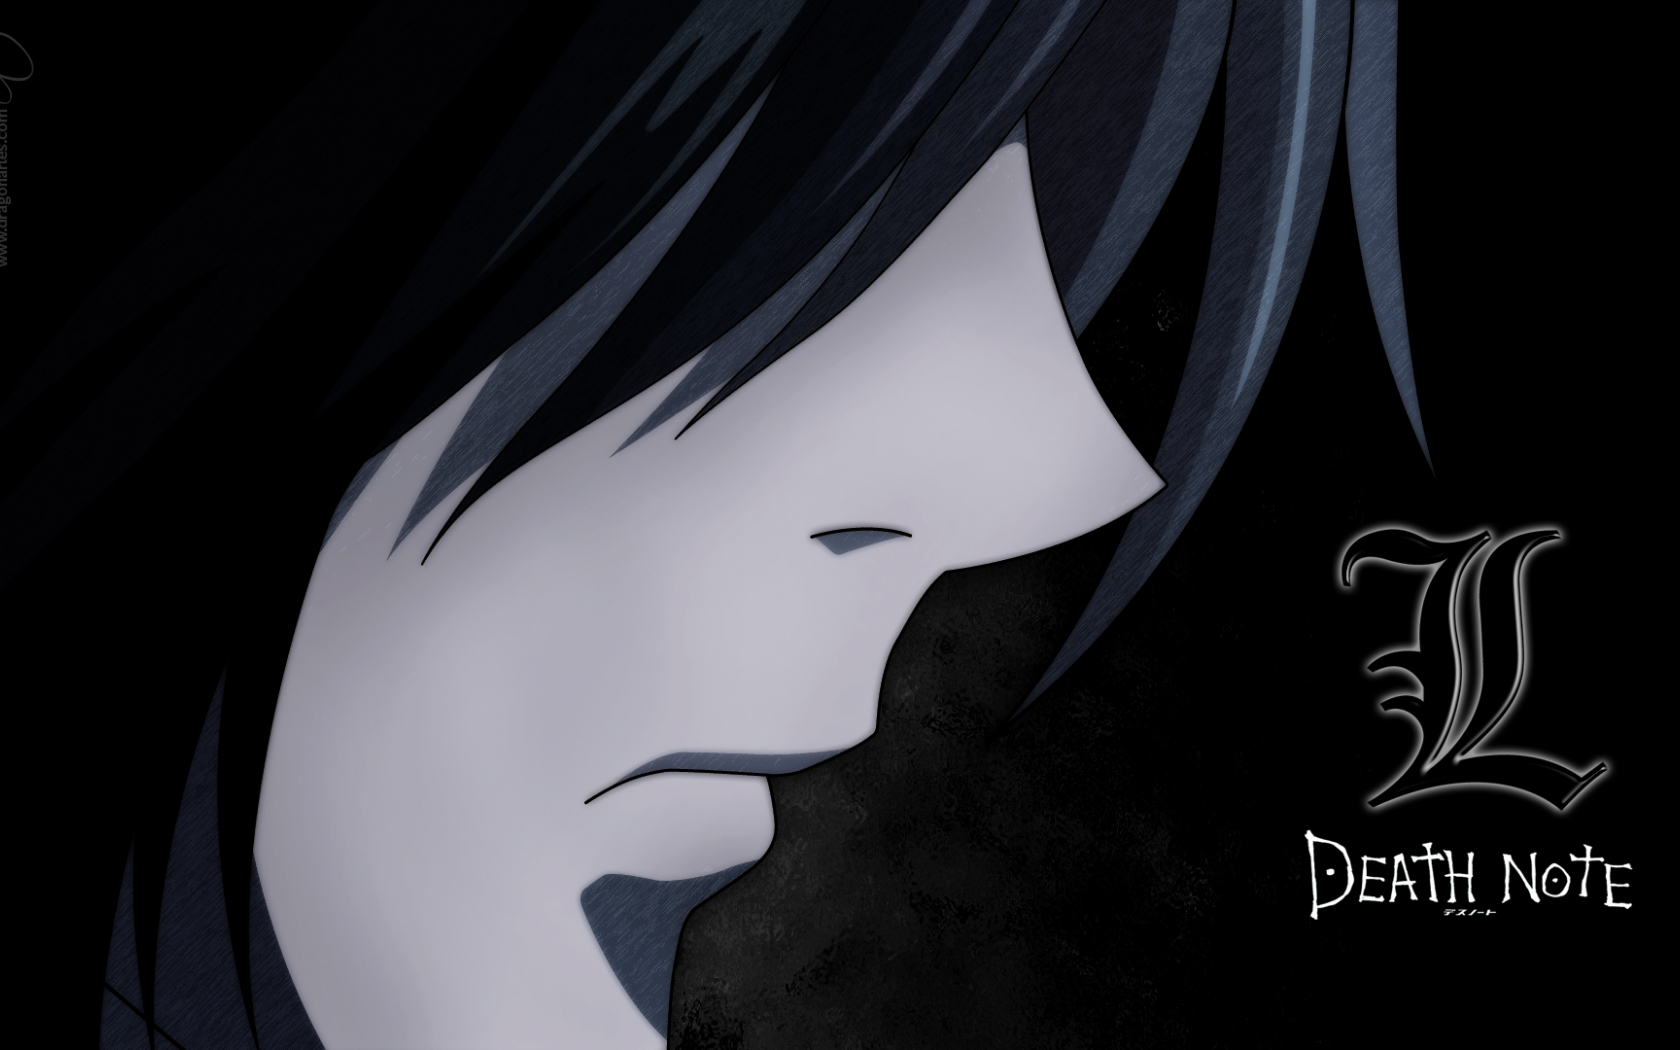 Free Download Death Note L Wallpapers Hd 1920x1080 For Your